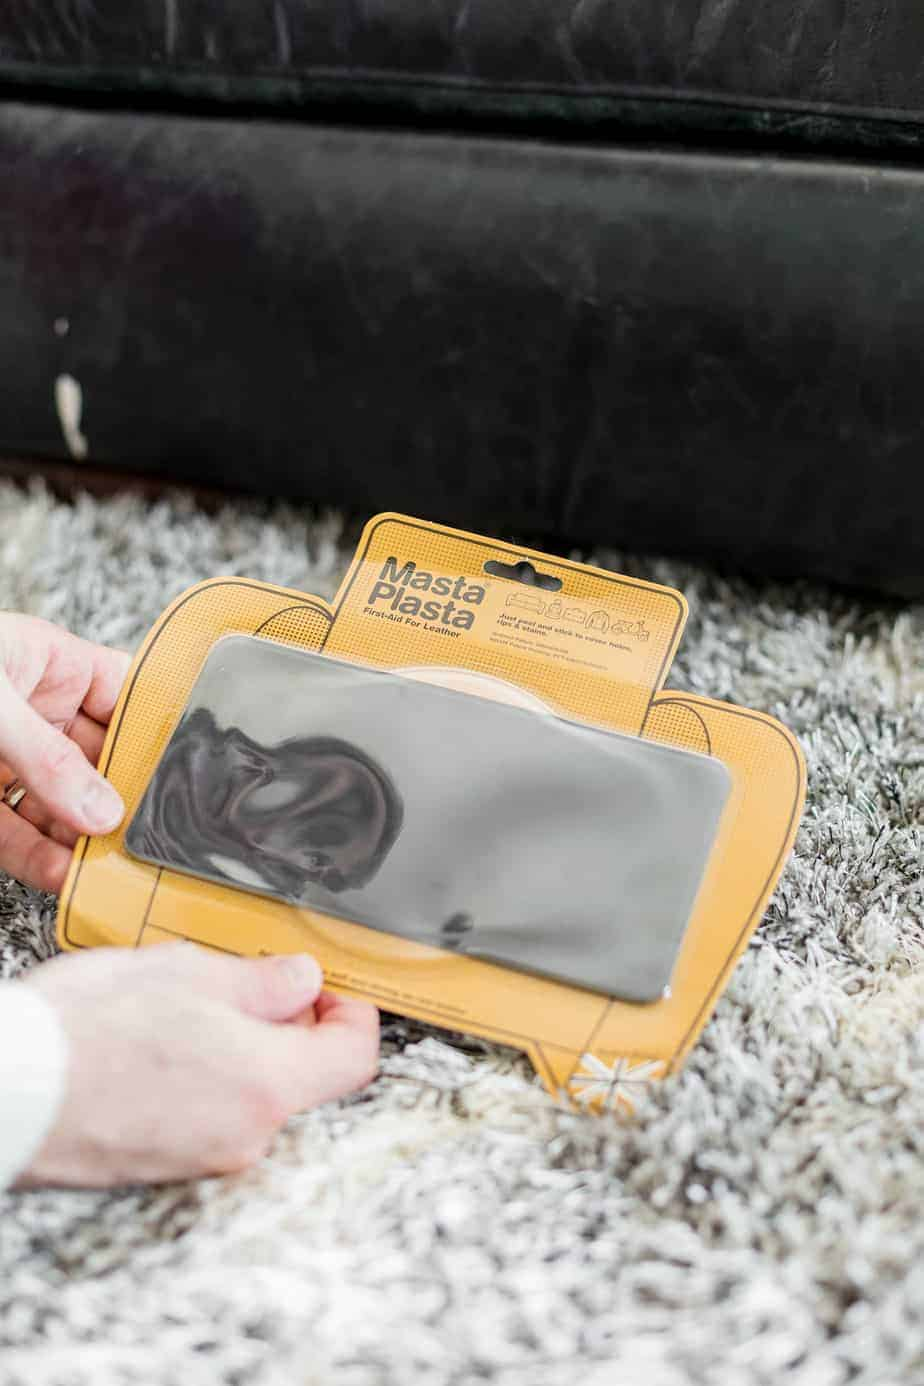 DIY Leather Goods Repair, cover scratches, rips, tears, and holes by simply peeling and sticking the MastaPlasta Leather Repair patches. Repairing leather holes, tears and rips with the best repair kit